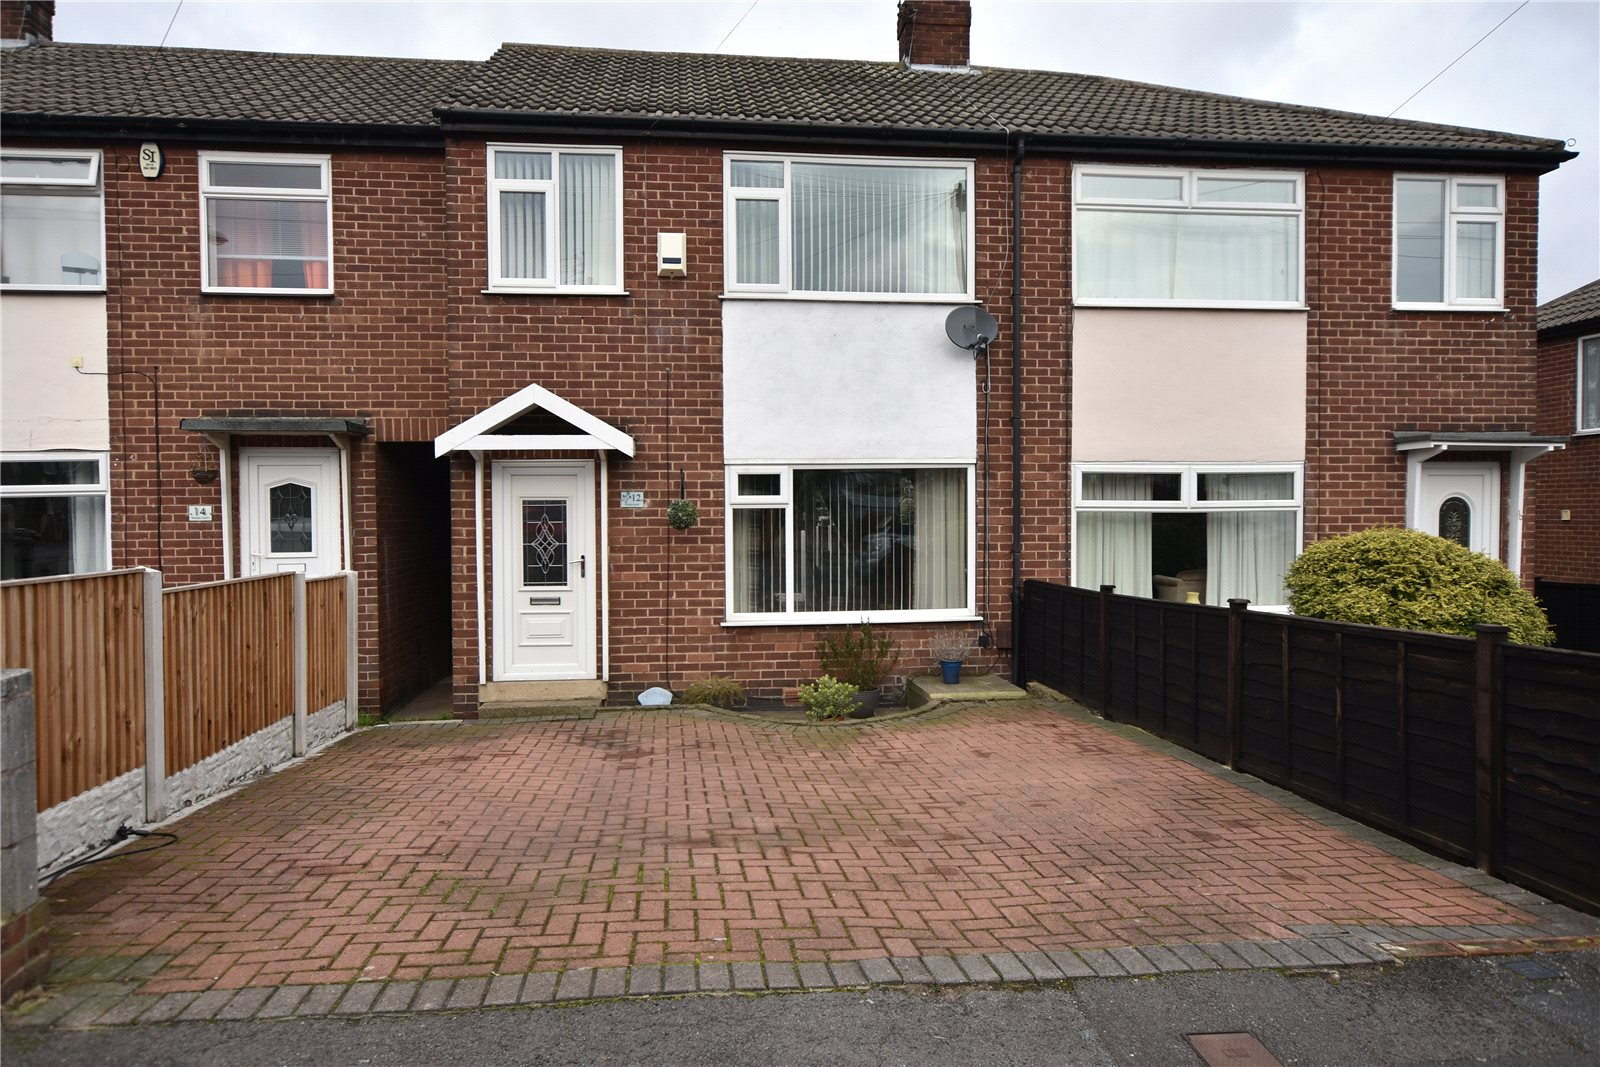 property for sale in Beeston, exterior terraced home